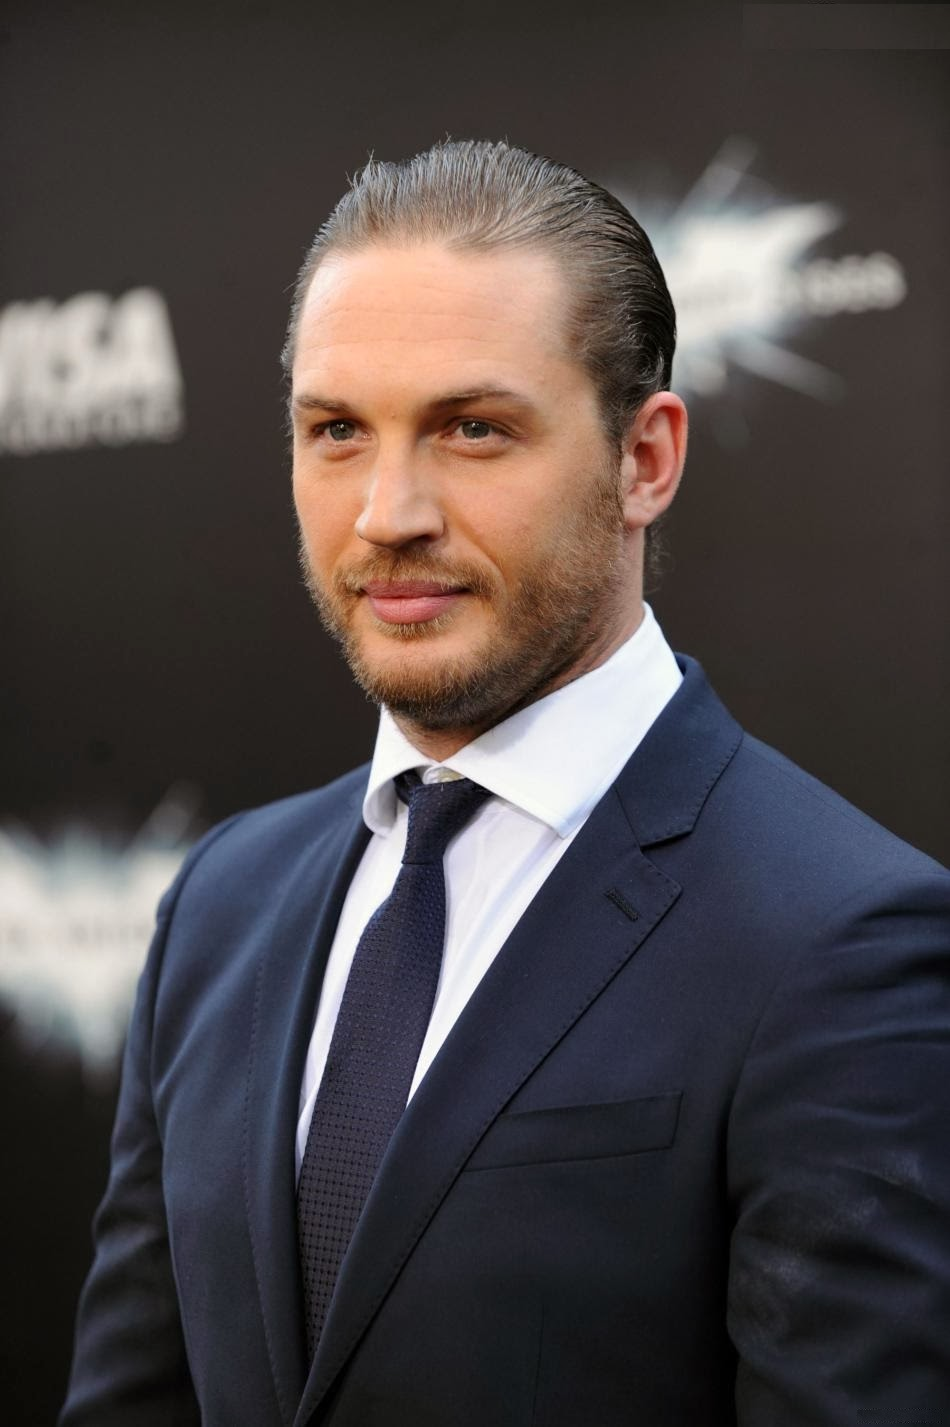 Male Female Clebrities Tom Hardy Hd Wallpapers